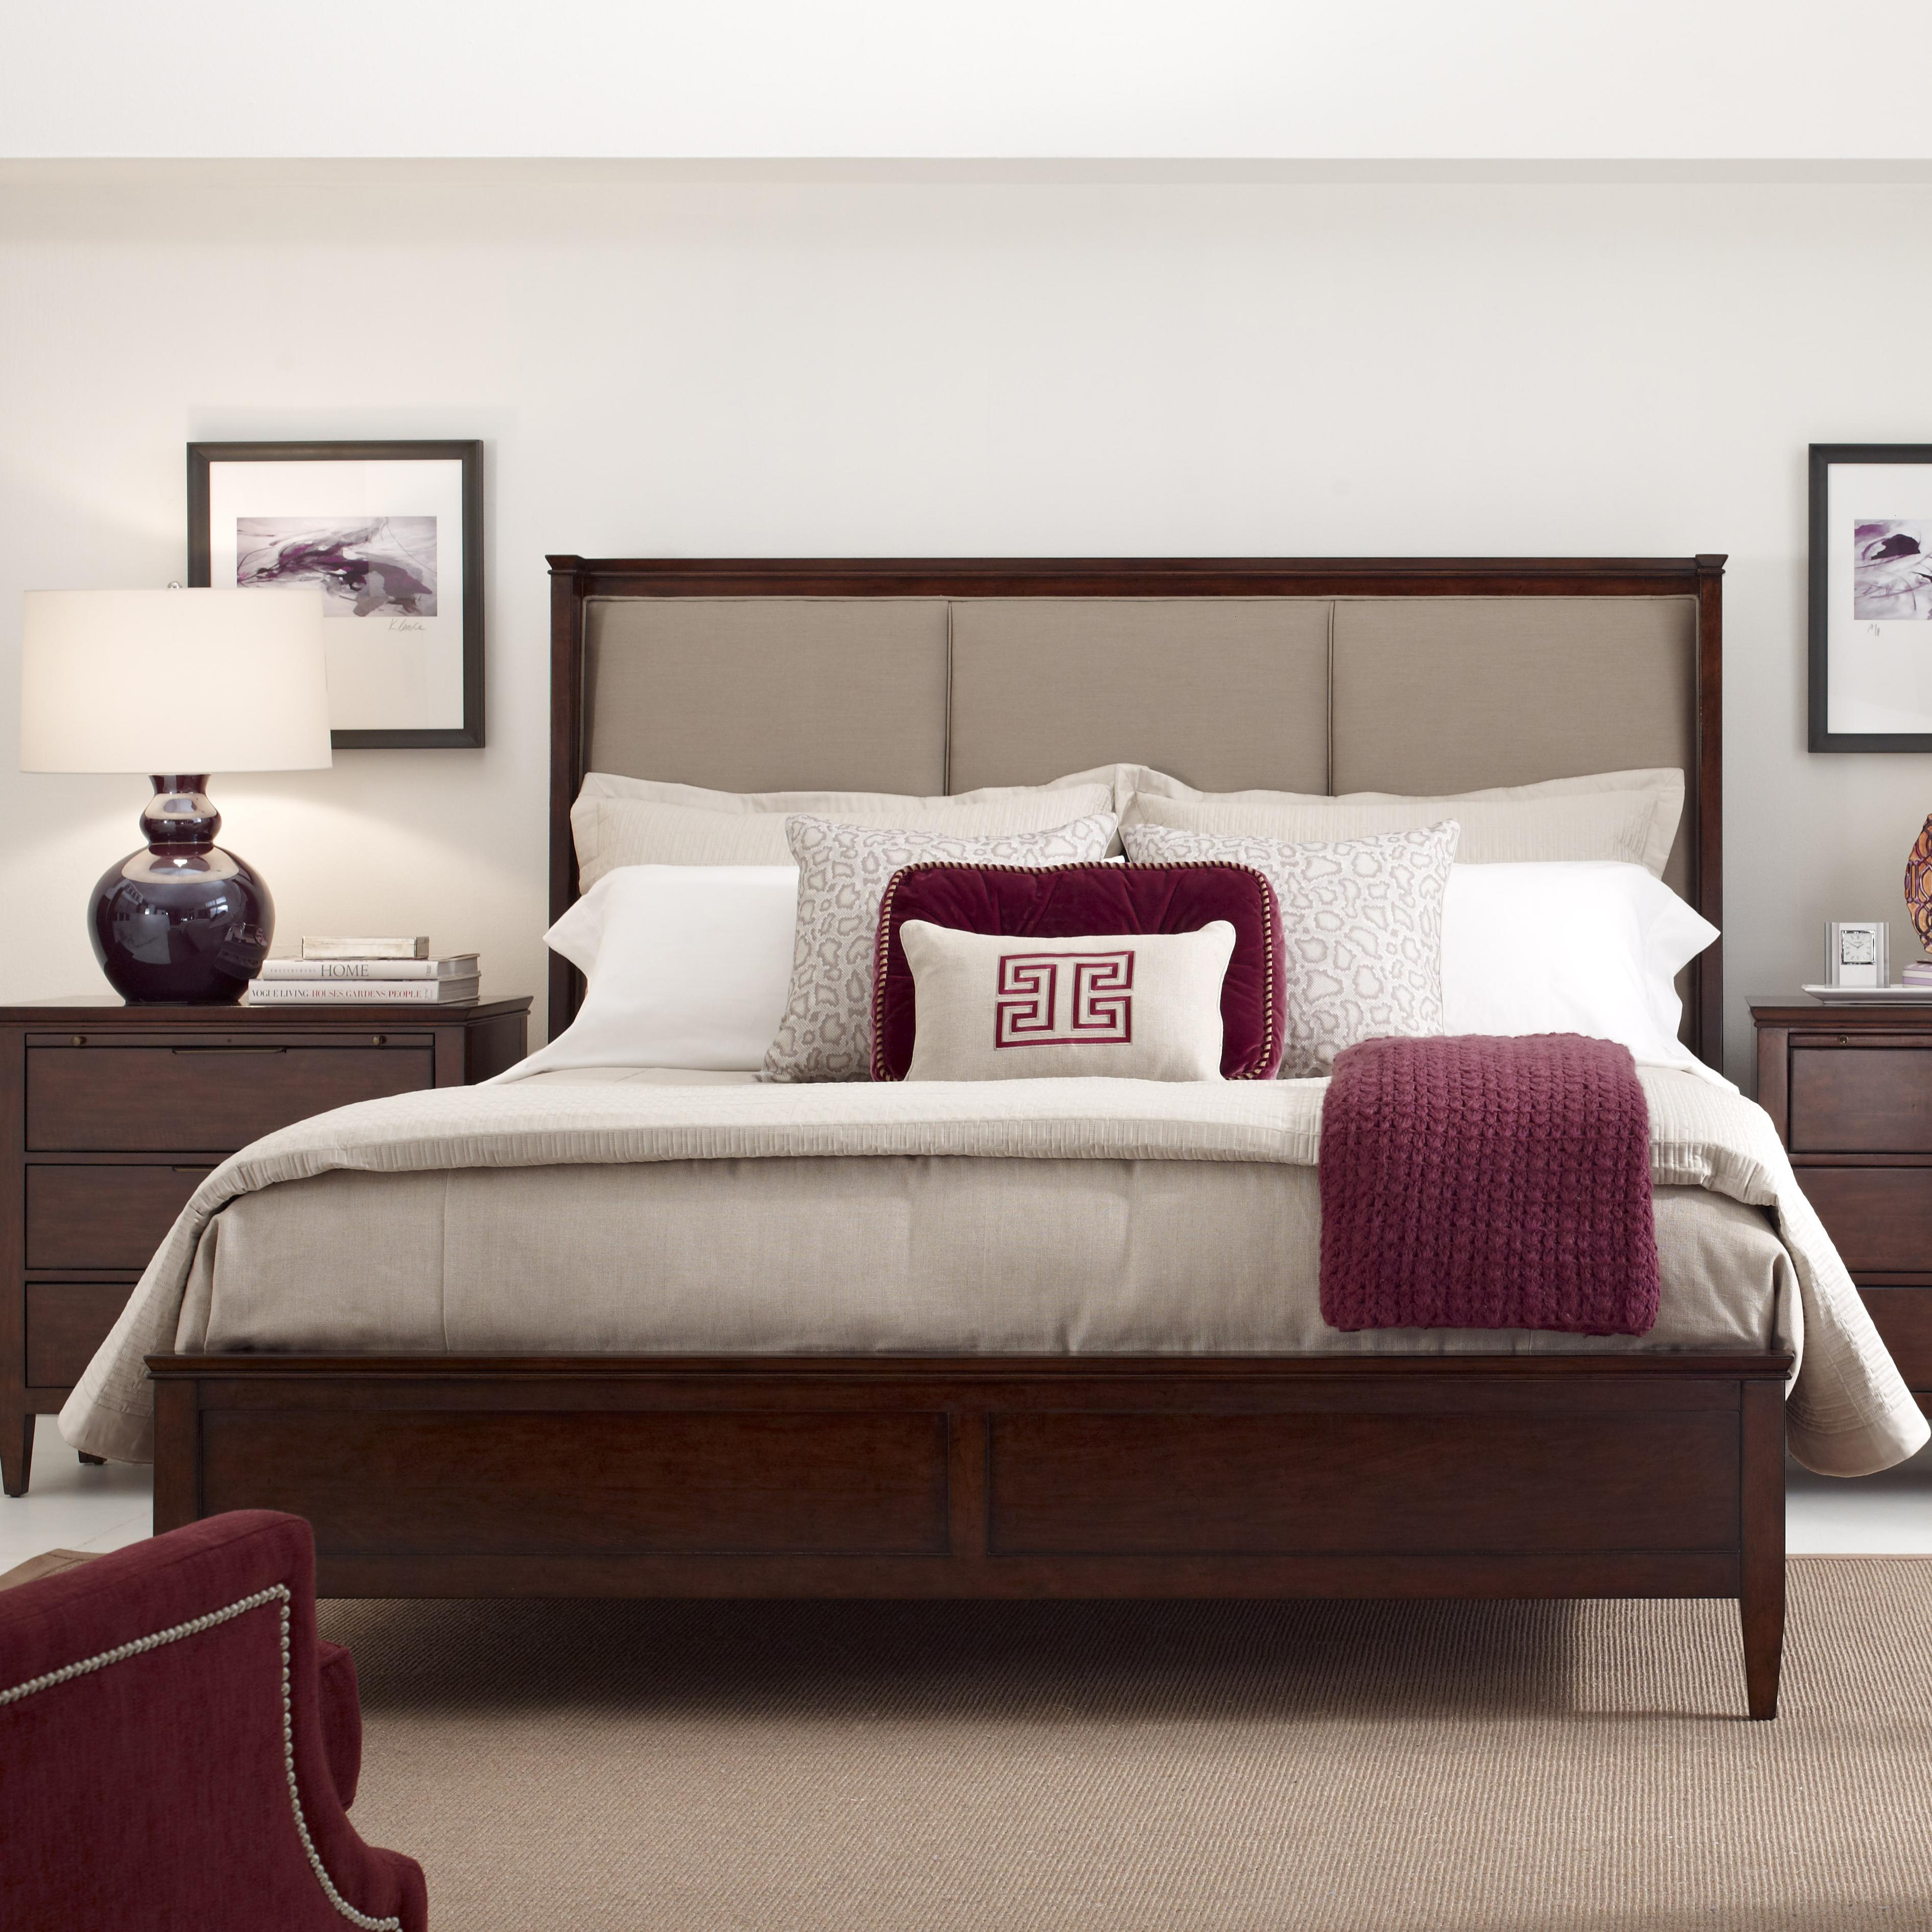 Spectrum King Upholstered Bed In Mushroom Fabric By Kincaid - Spectrum furniture